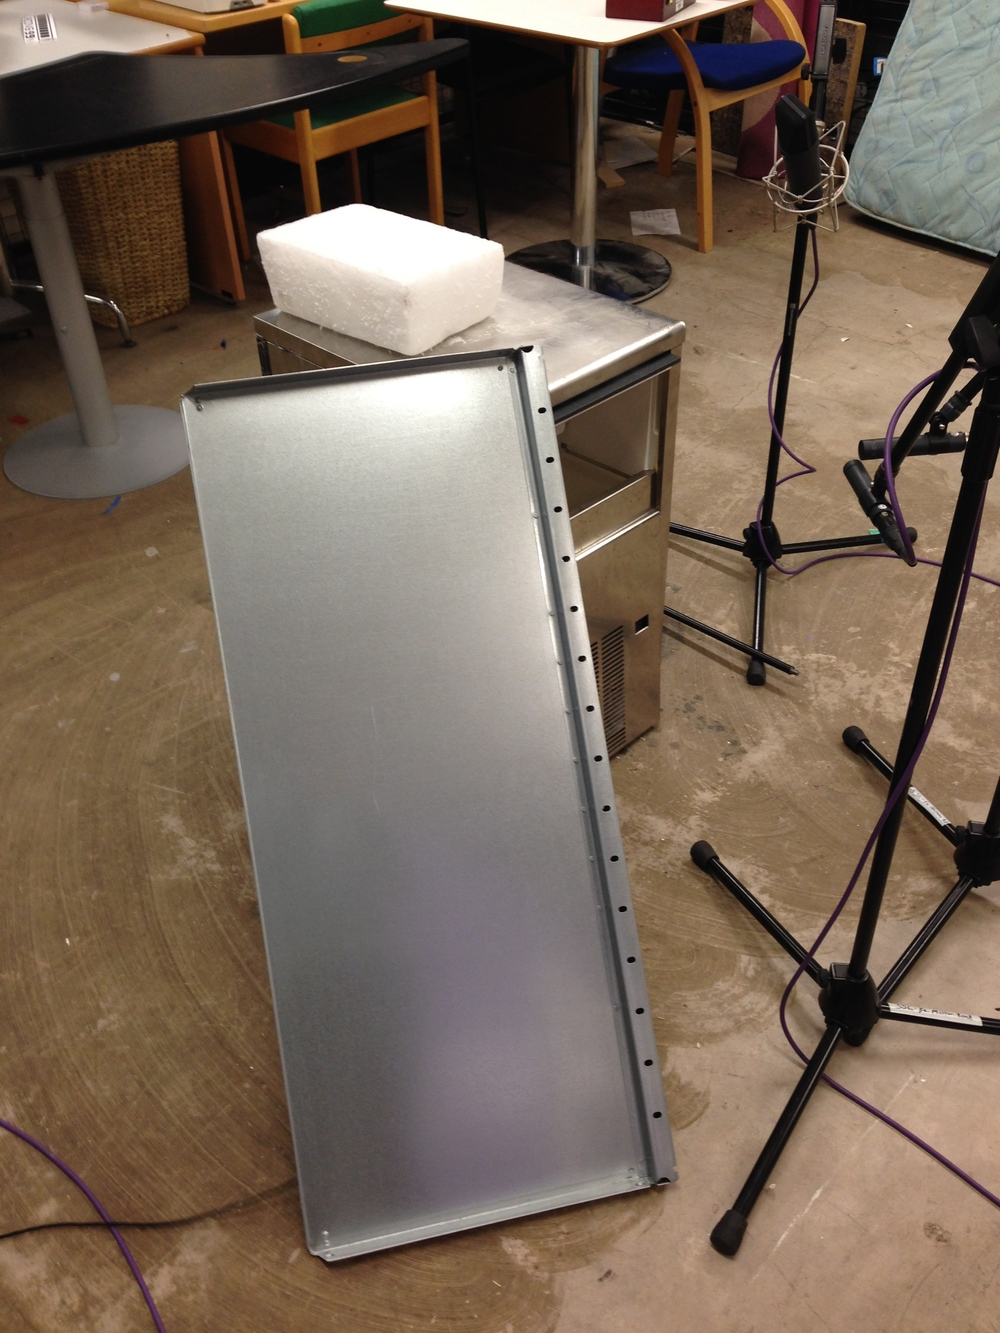 Messing around with an old ice machine and a shelf. A hidden contact mic is attached to the shelf's underside.